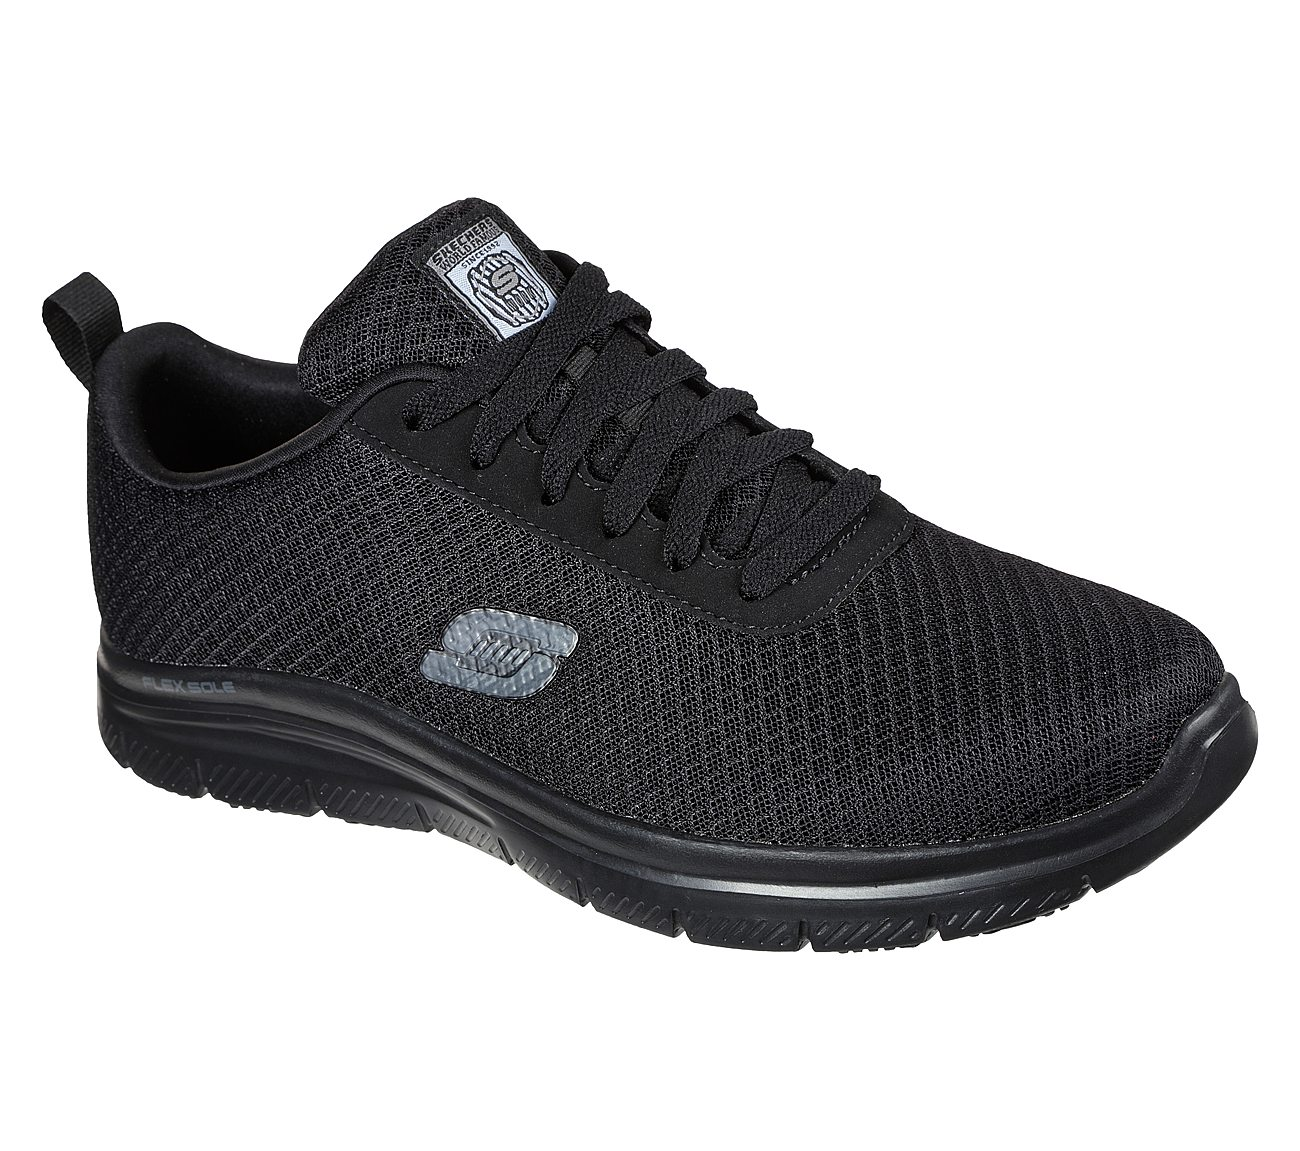 3eb9b25b6a2 Buy SKECHERS Work Relaxed Fit  Flex Advantage - Bendon SR Work Shoes ...